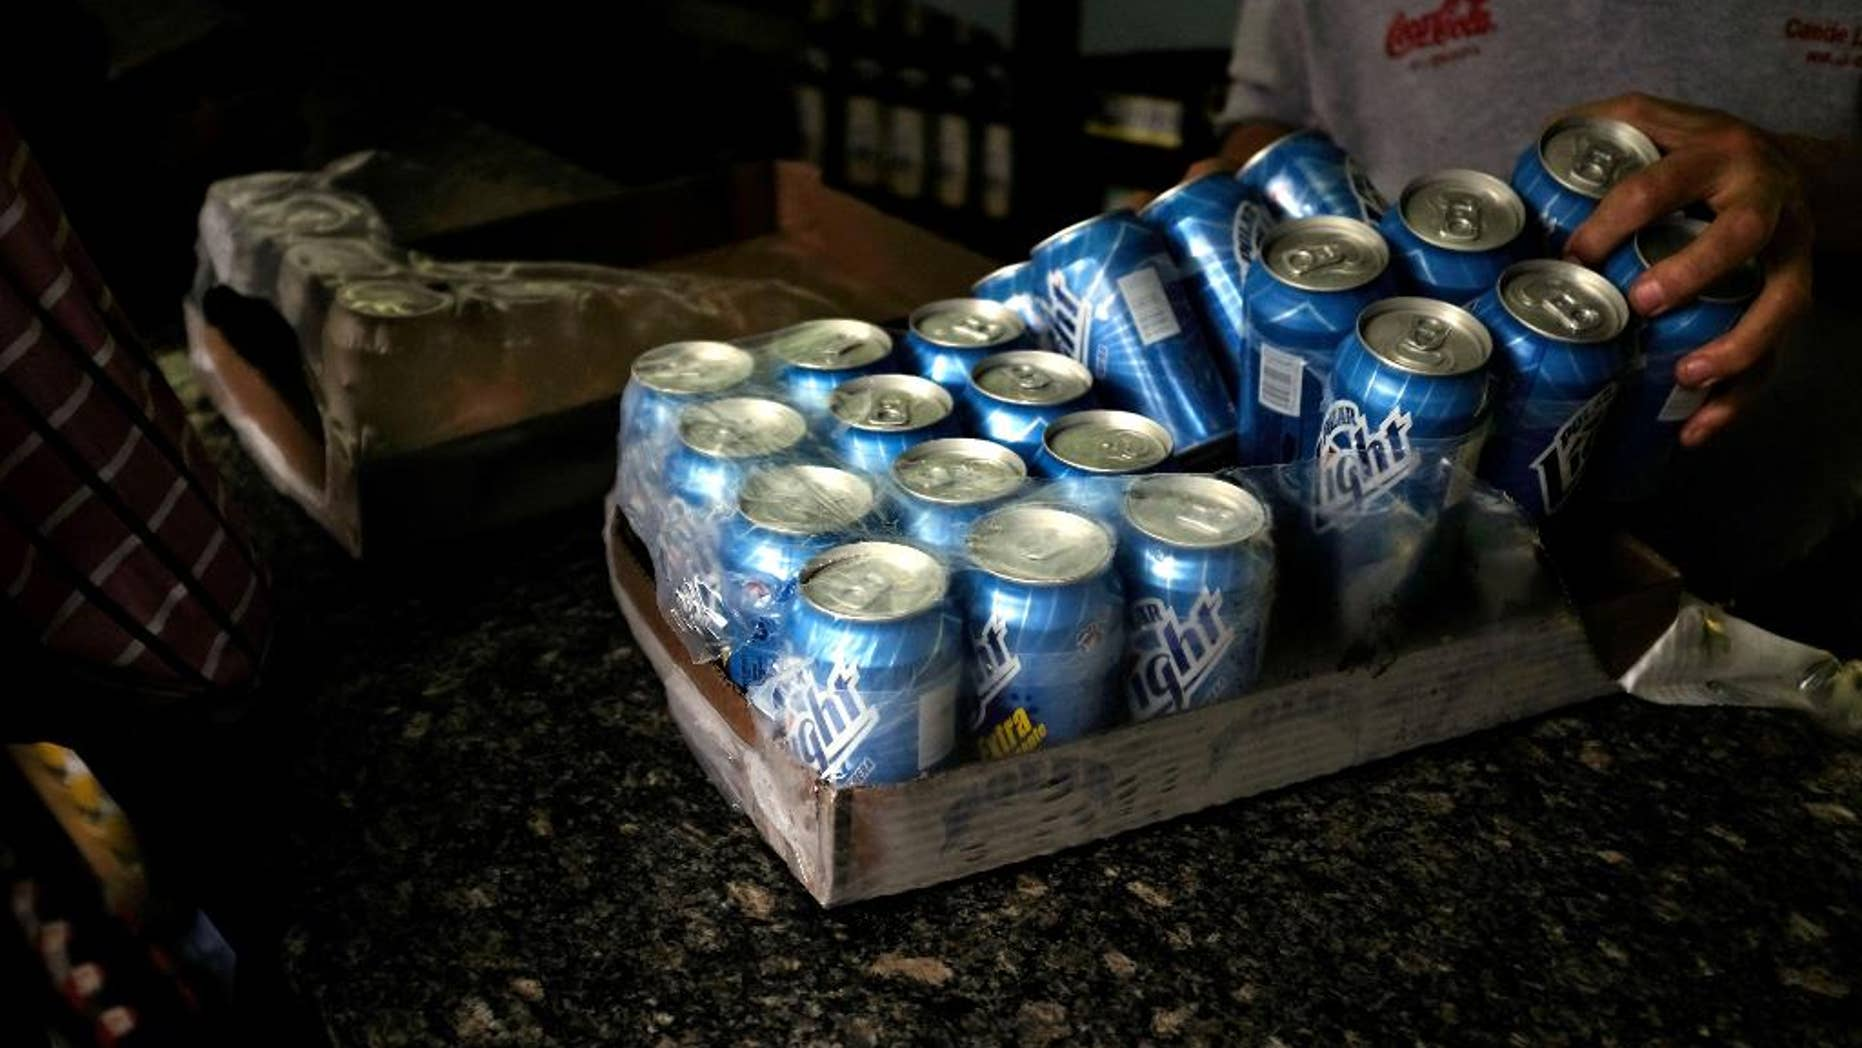 FILE - In this July 31, 2015 file photo, a liquor store worker unpacks a case of Polar beer, in downtown Caracas, Venezuela. Cerveceria Polar announced Friday, April 29, 2016,  it has shut down beer production at its factory in Carabobo, the last of its four, due to a shortage of imported supplies. (AP Photo/Fernando Llano, File)